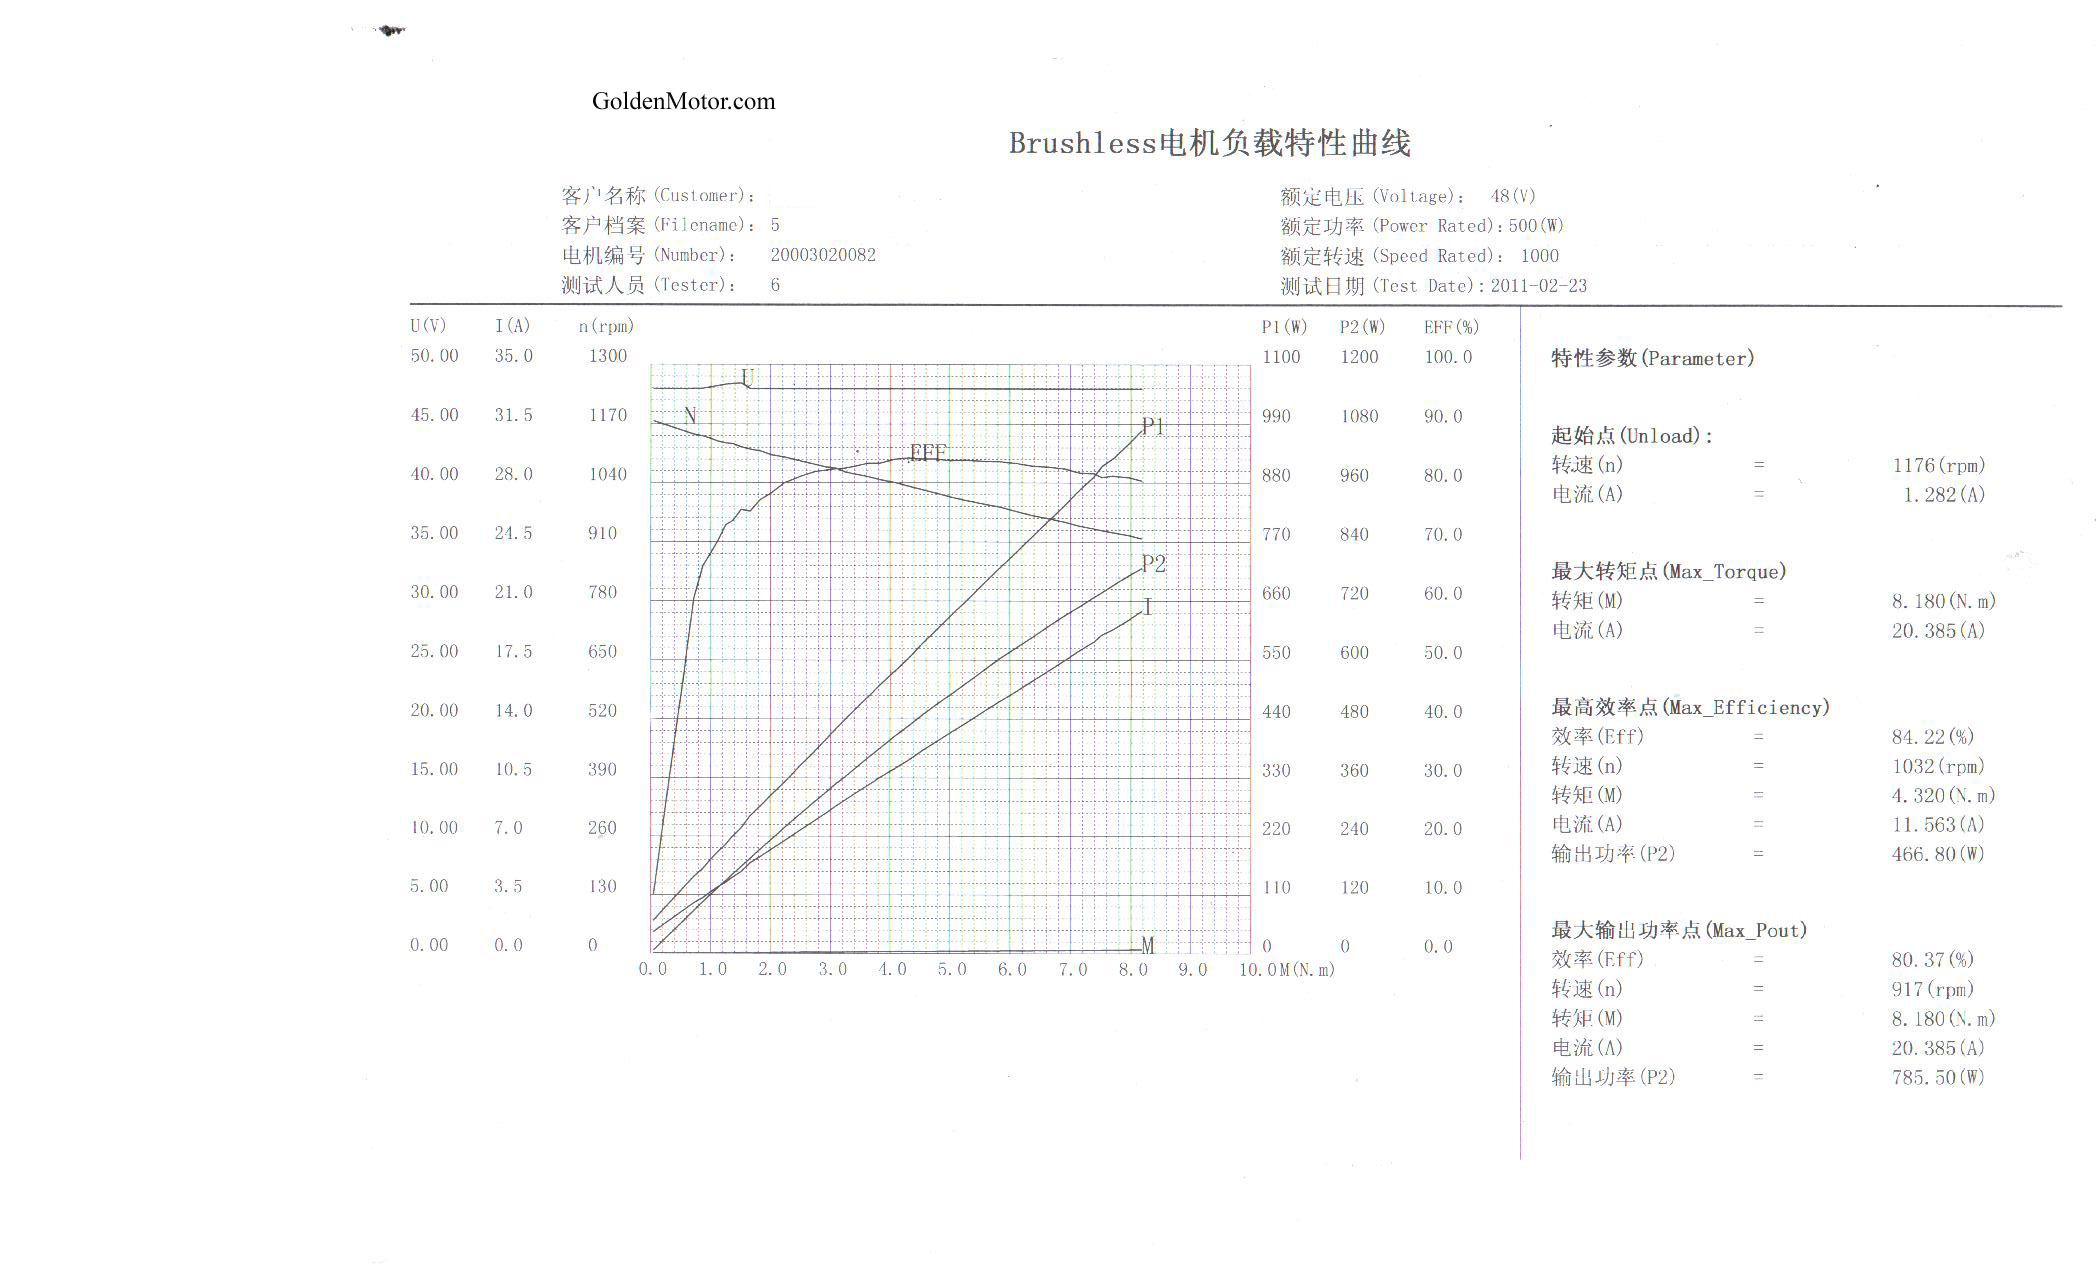 Brushless Motors Bldc Motor Sensorless Controllers 10 Hp Electric Wiring Diagram 500w Performance Curve